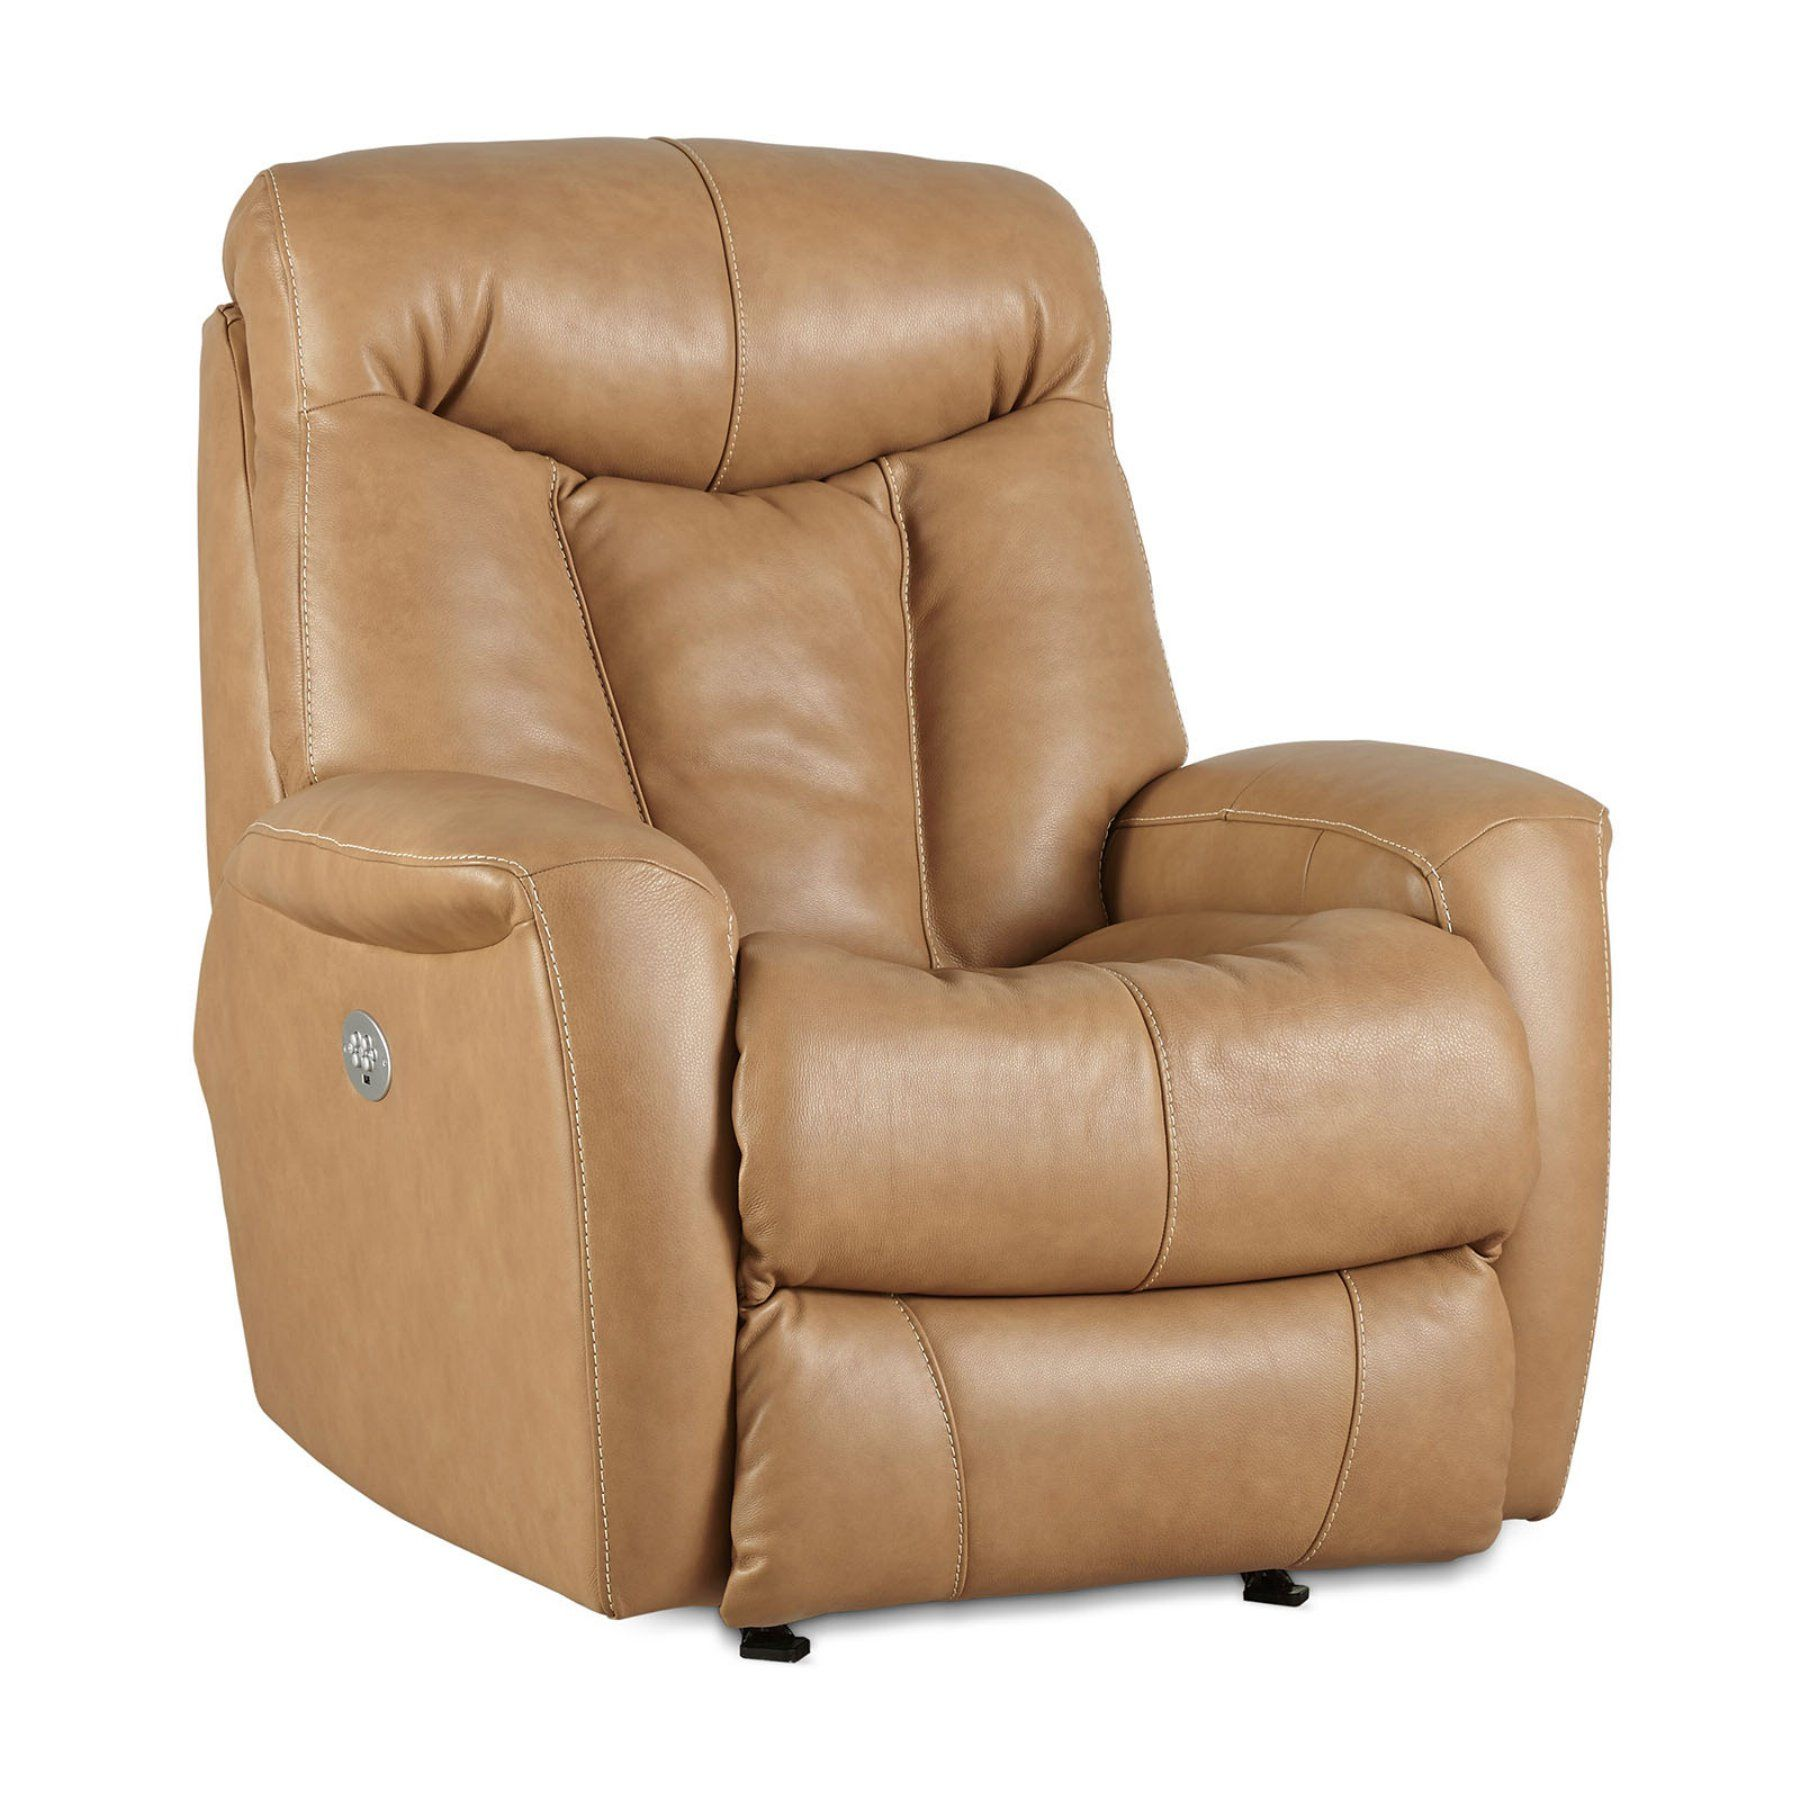 Recline Designs Gibby Leather Rocker Recliner With Power Headrest